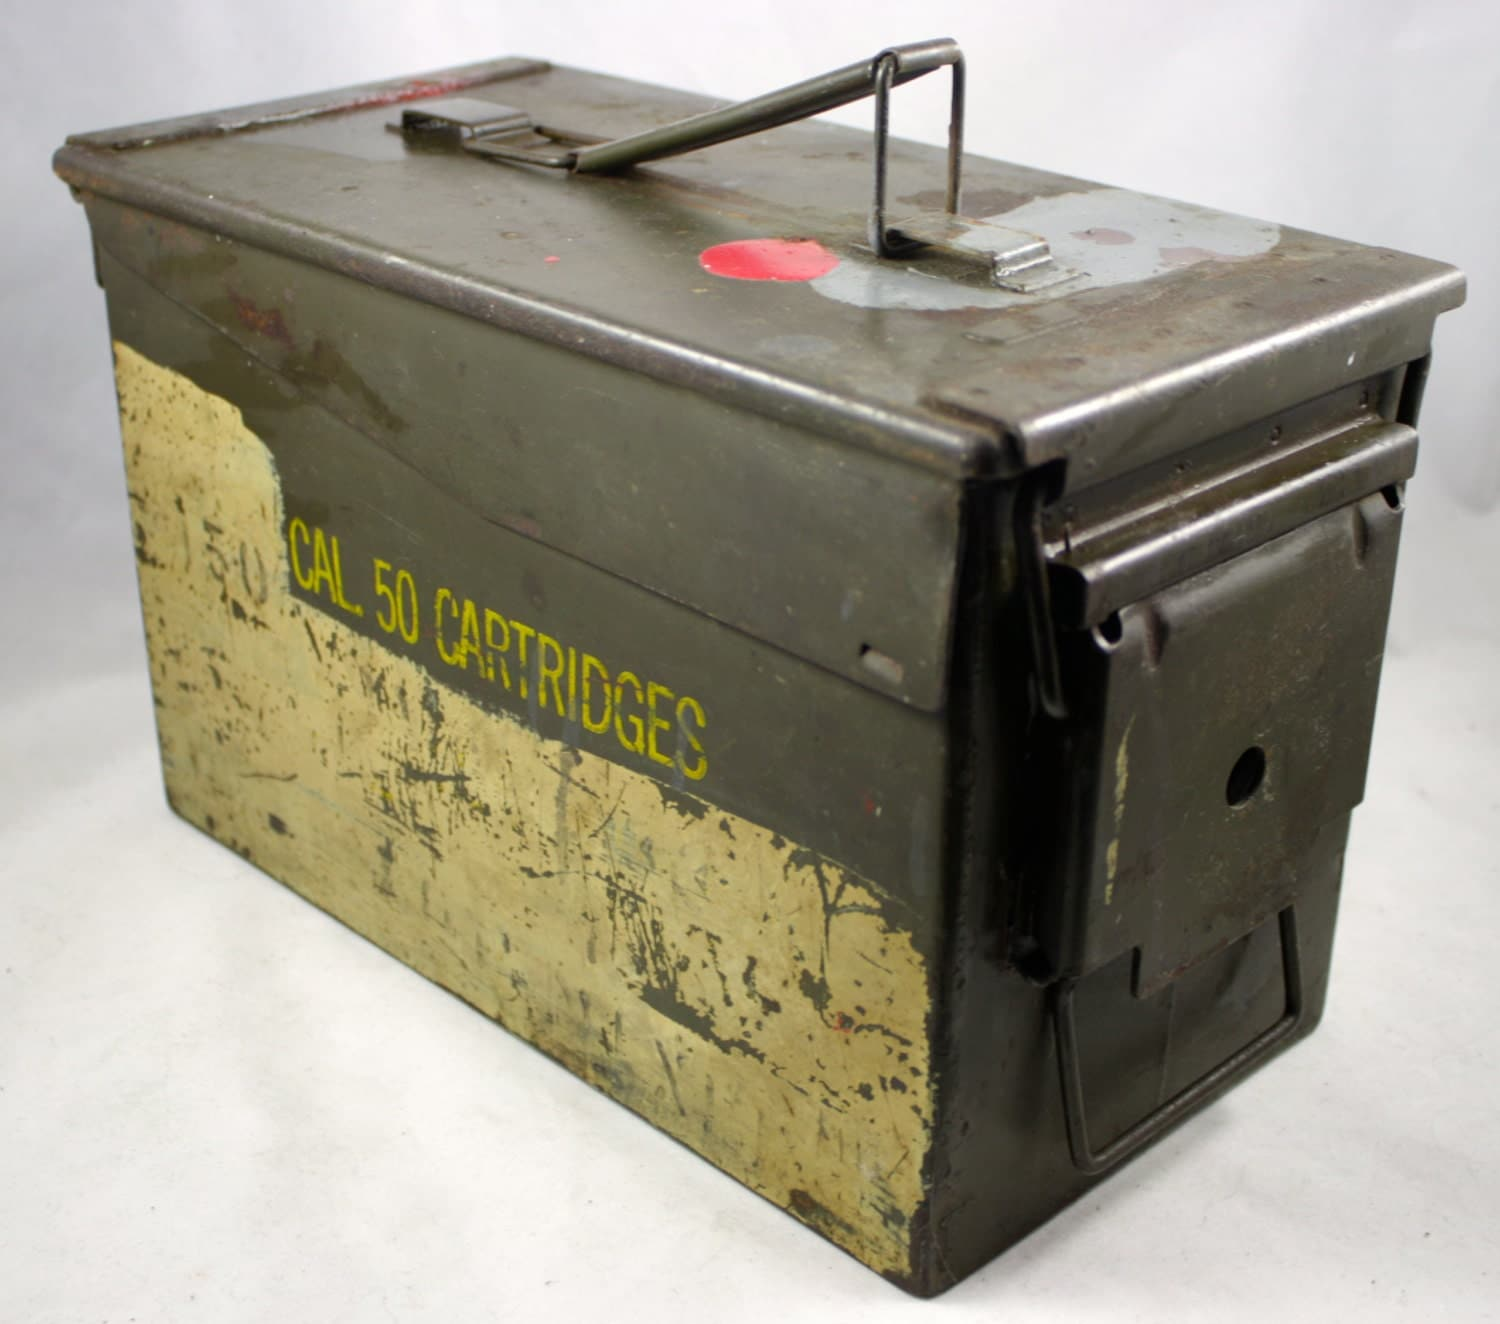 Vintage MILITARY Ammunition Box M2A1 Ammo Case 50 Caliber SHT